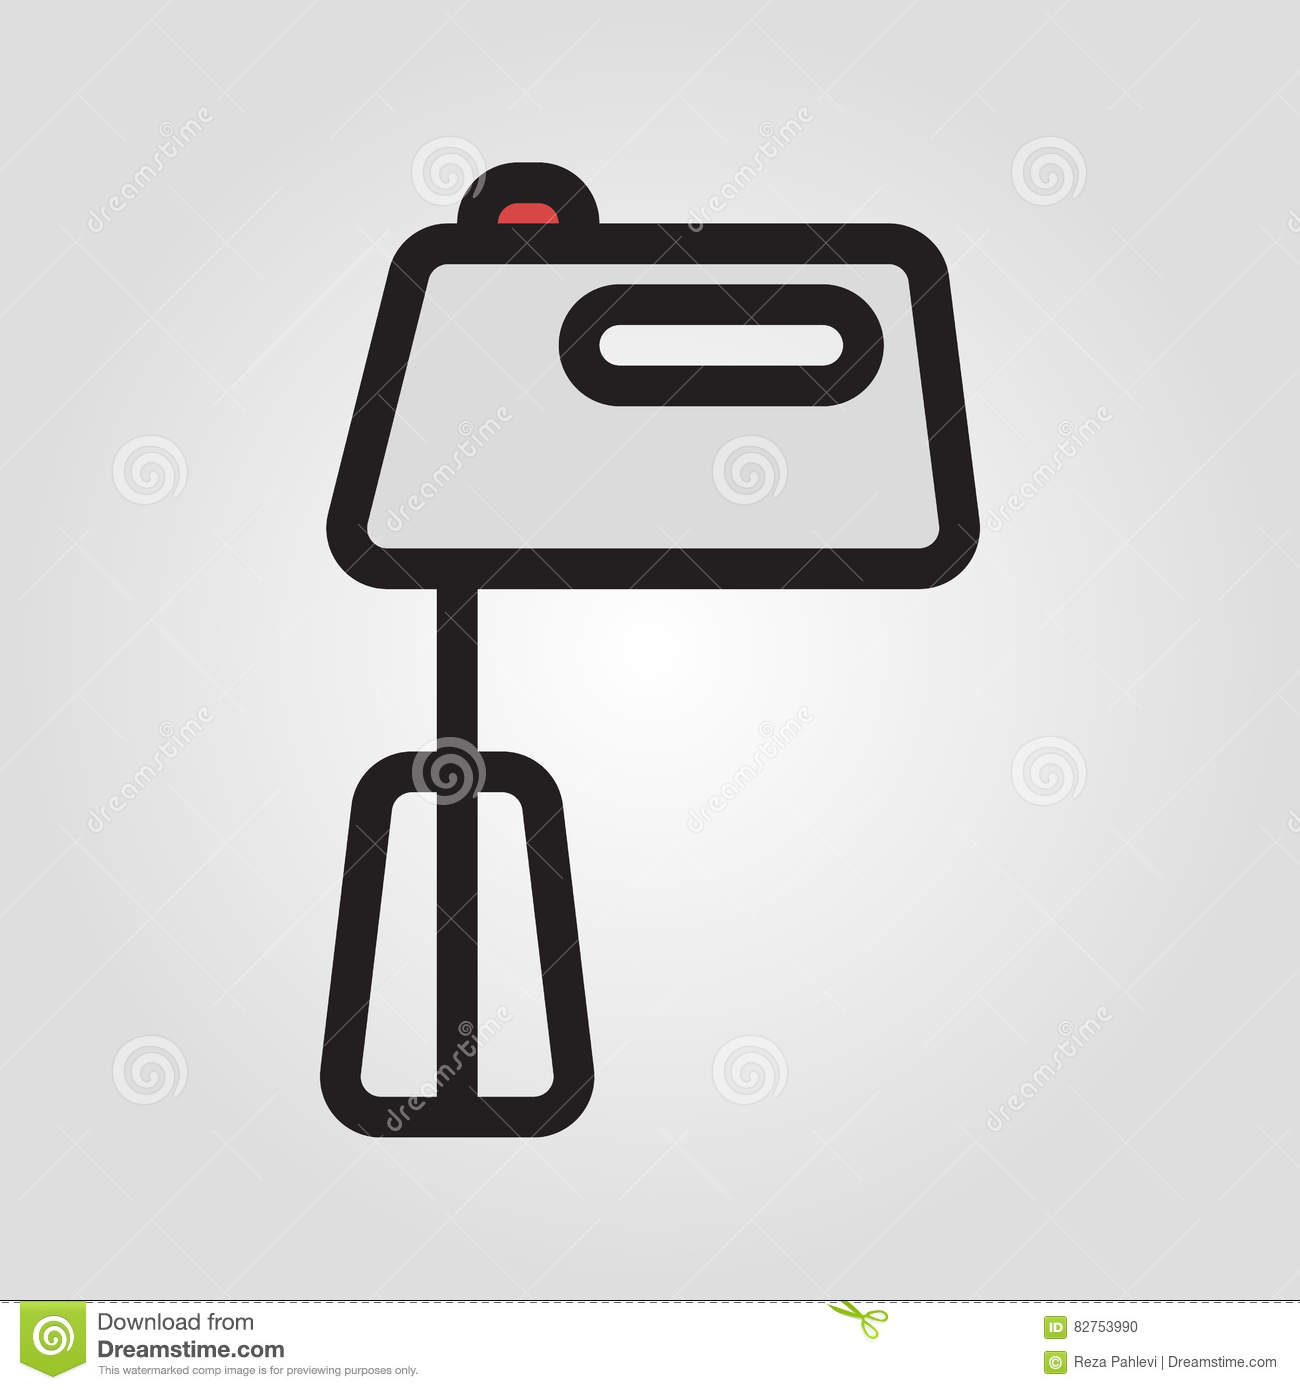 Hand Mixer Icon In Trendy Flat Style Isolated On Grey Background